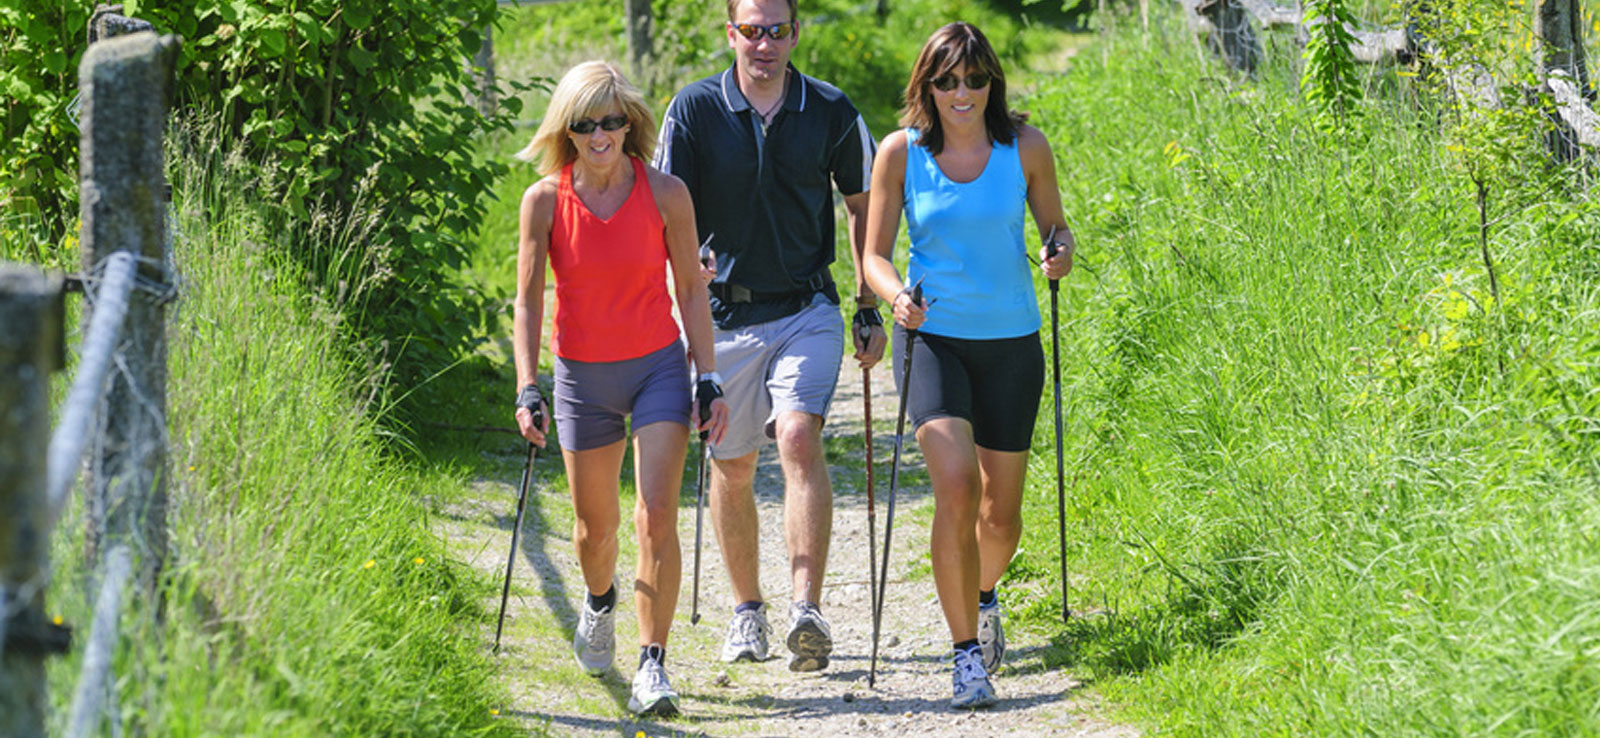 Nordic Walking Arrangement